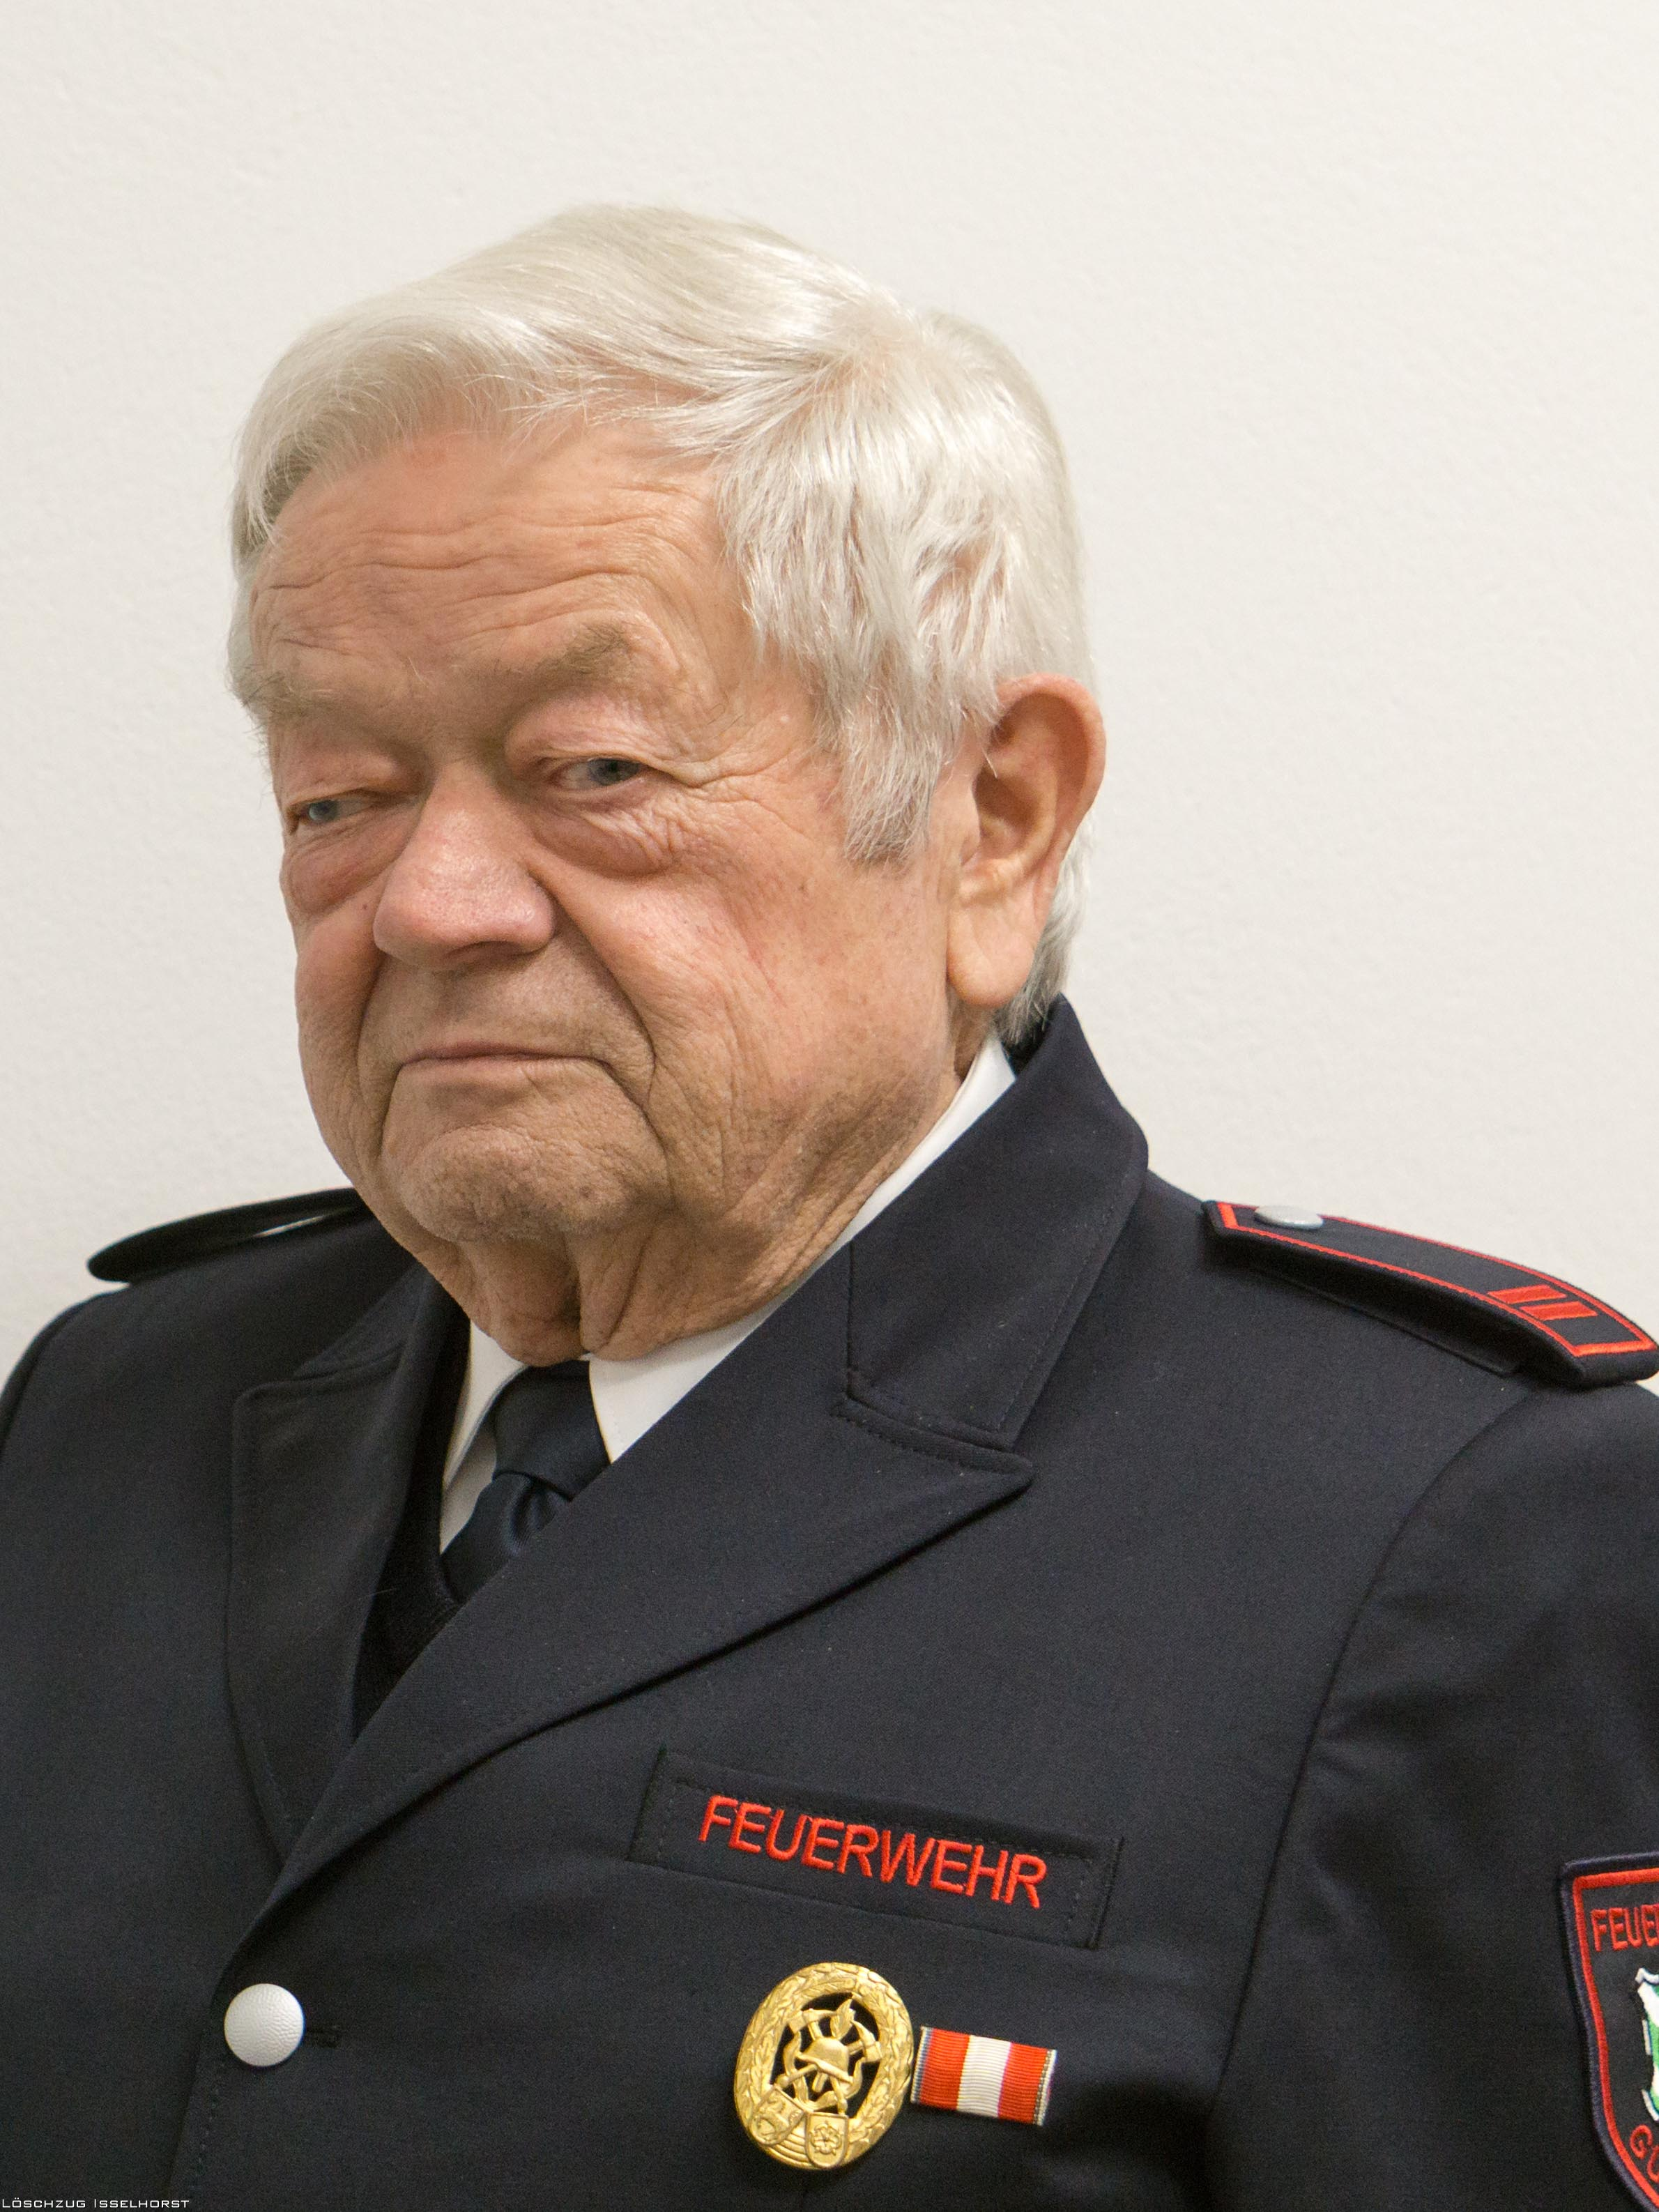 Siegfried Buschkamp